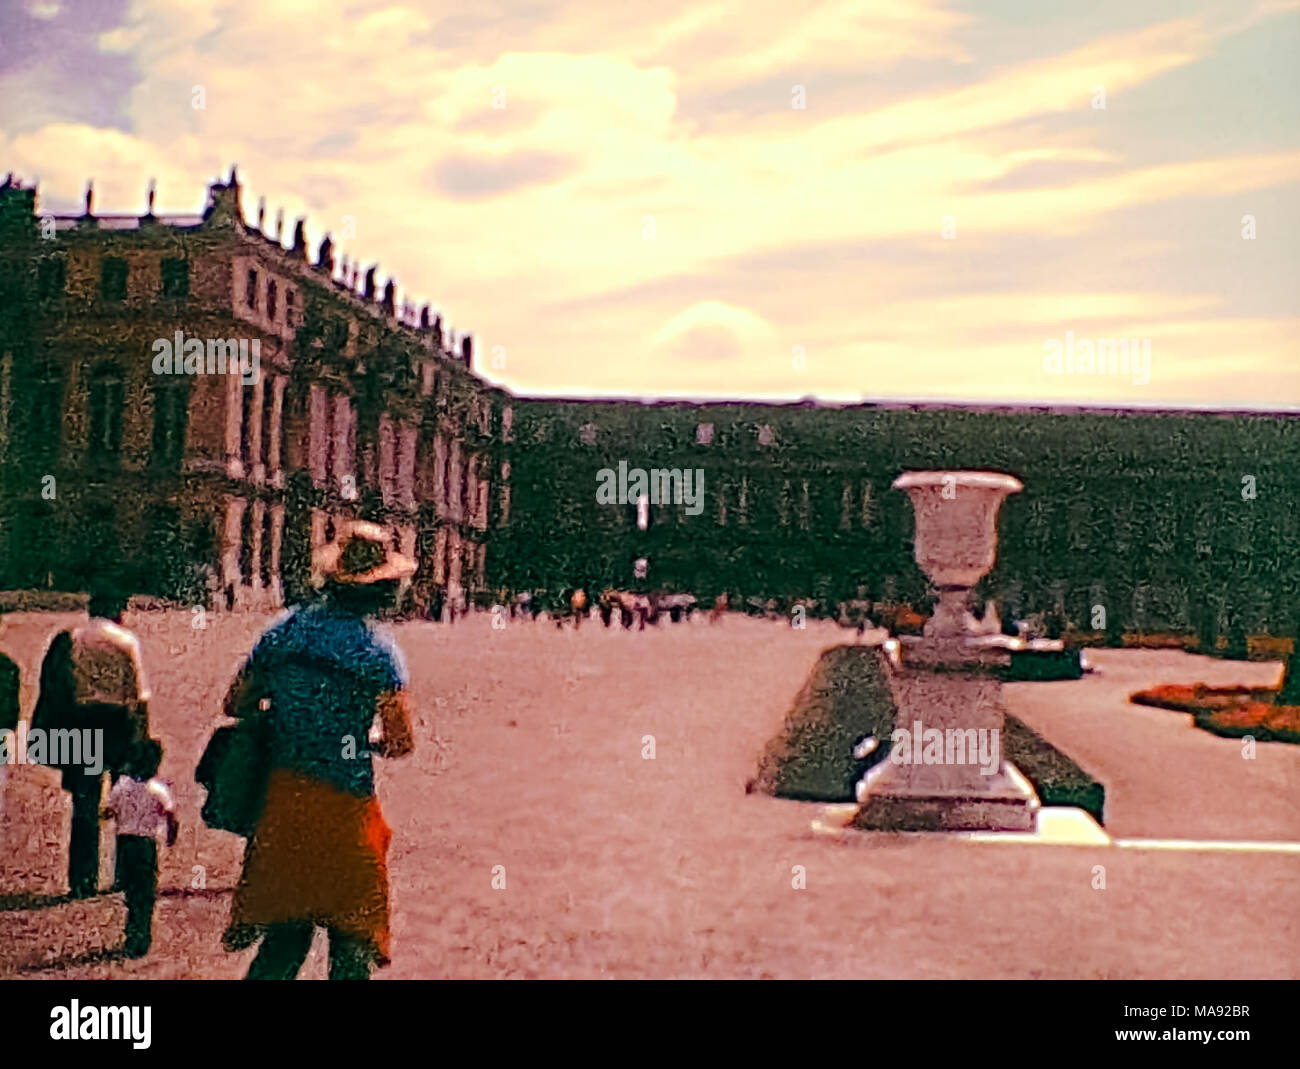 PARIS, FRANCE - CIRCA 1976: the Palace of Versailles with its famous Versailles garden from historic archival footage in Paris city of France in 1970s. - Stock Image